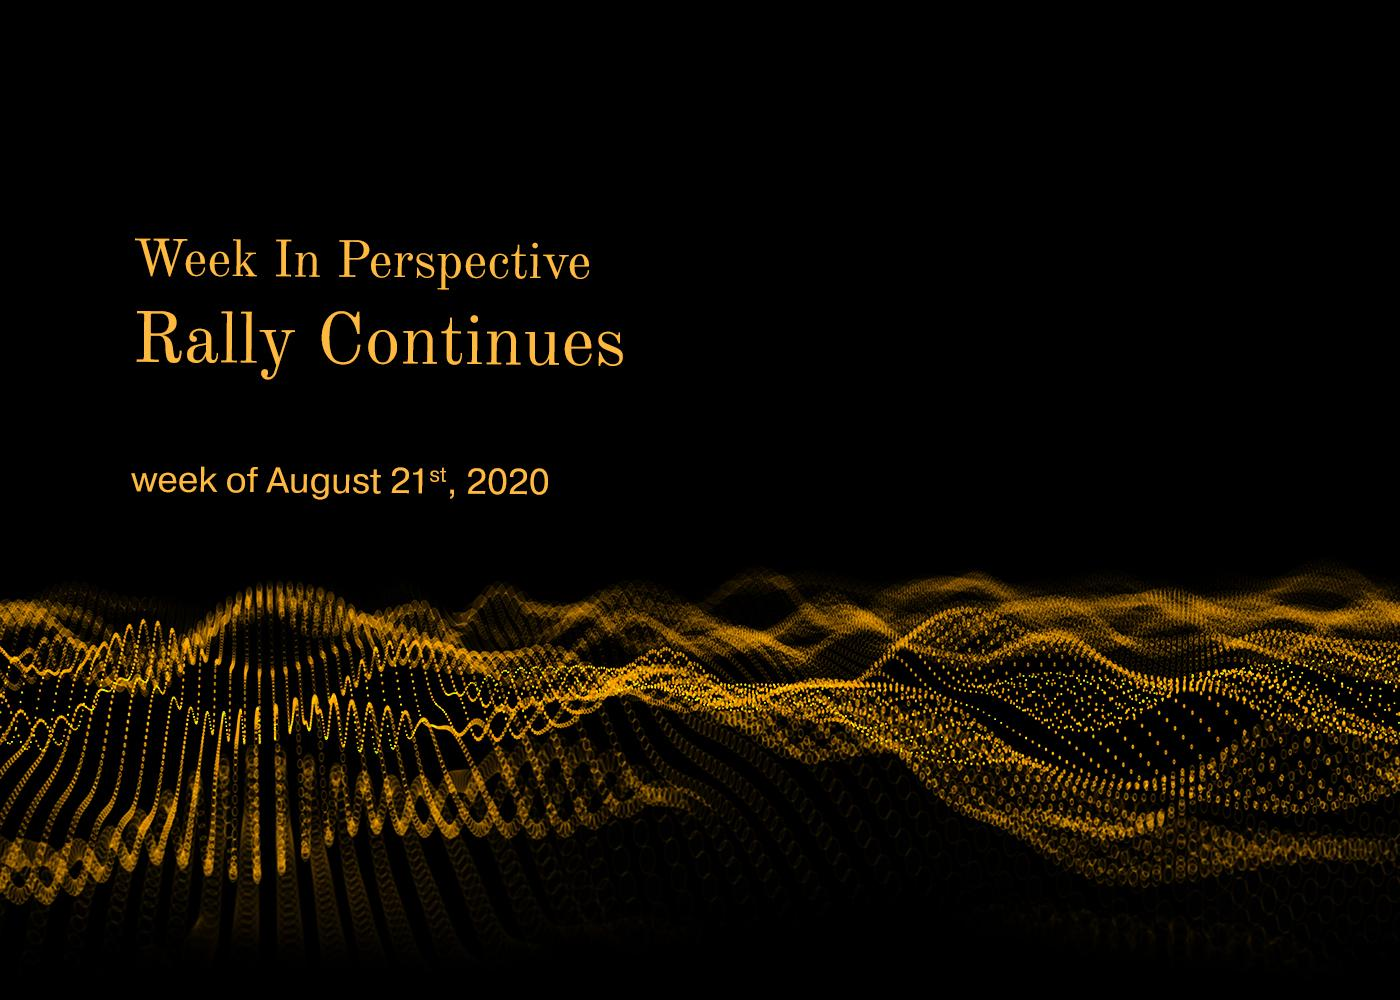 Week In Perspective August 21, 2020: Rally Continues Thumbnail